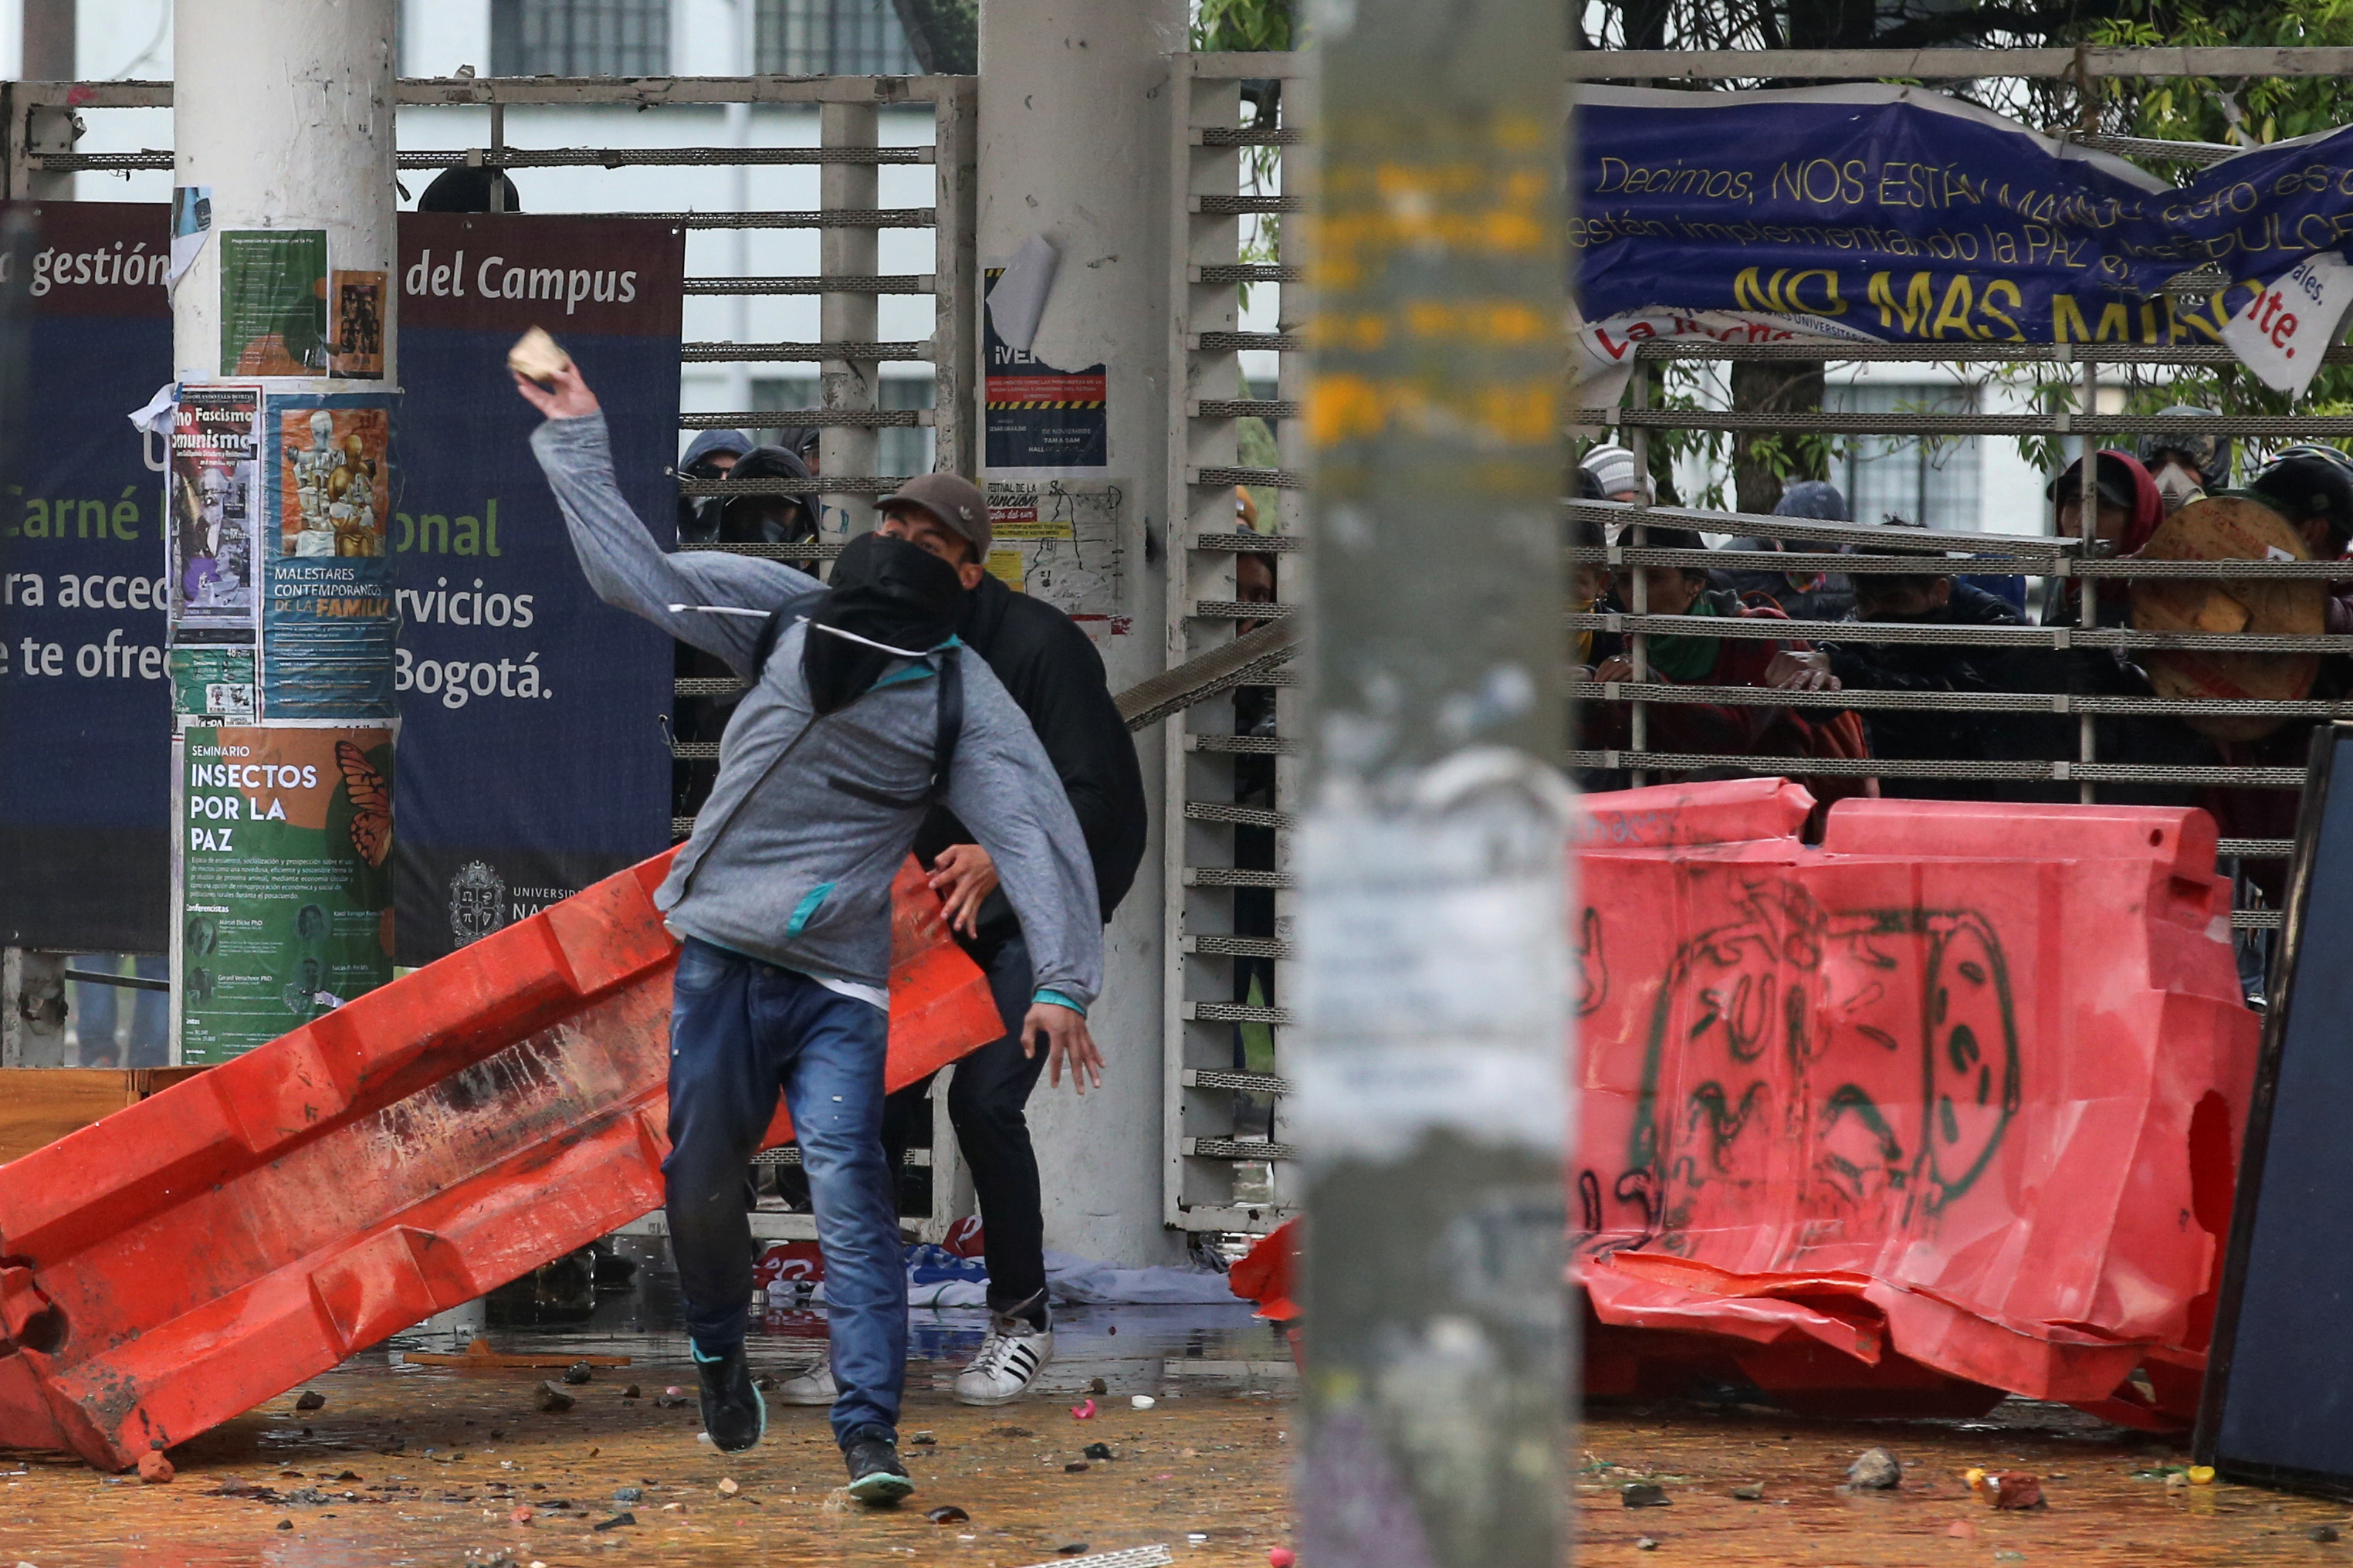 A demonstrator throws a stone during a protest in Bogota, Colombia, November 21, 2019. REUTERS/Luisa Gonzalez